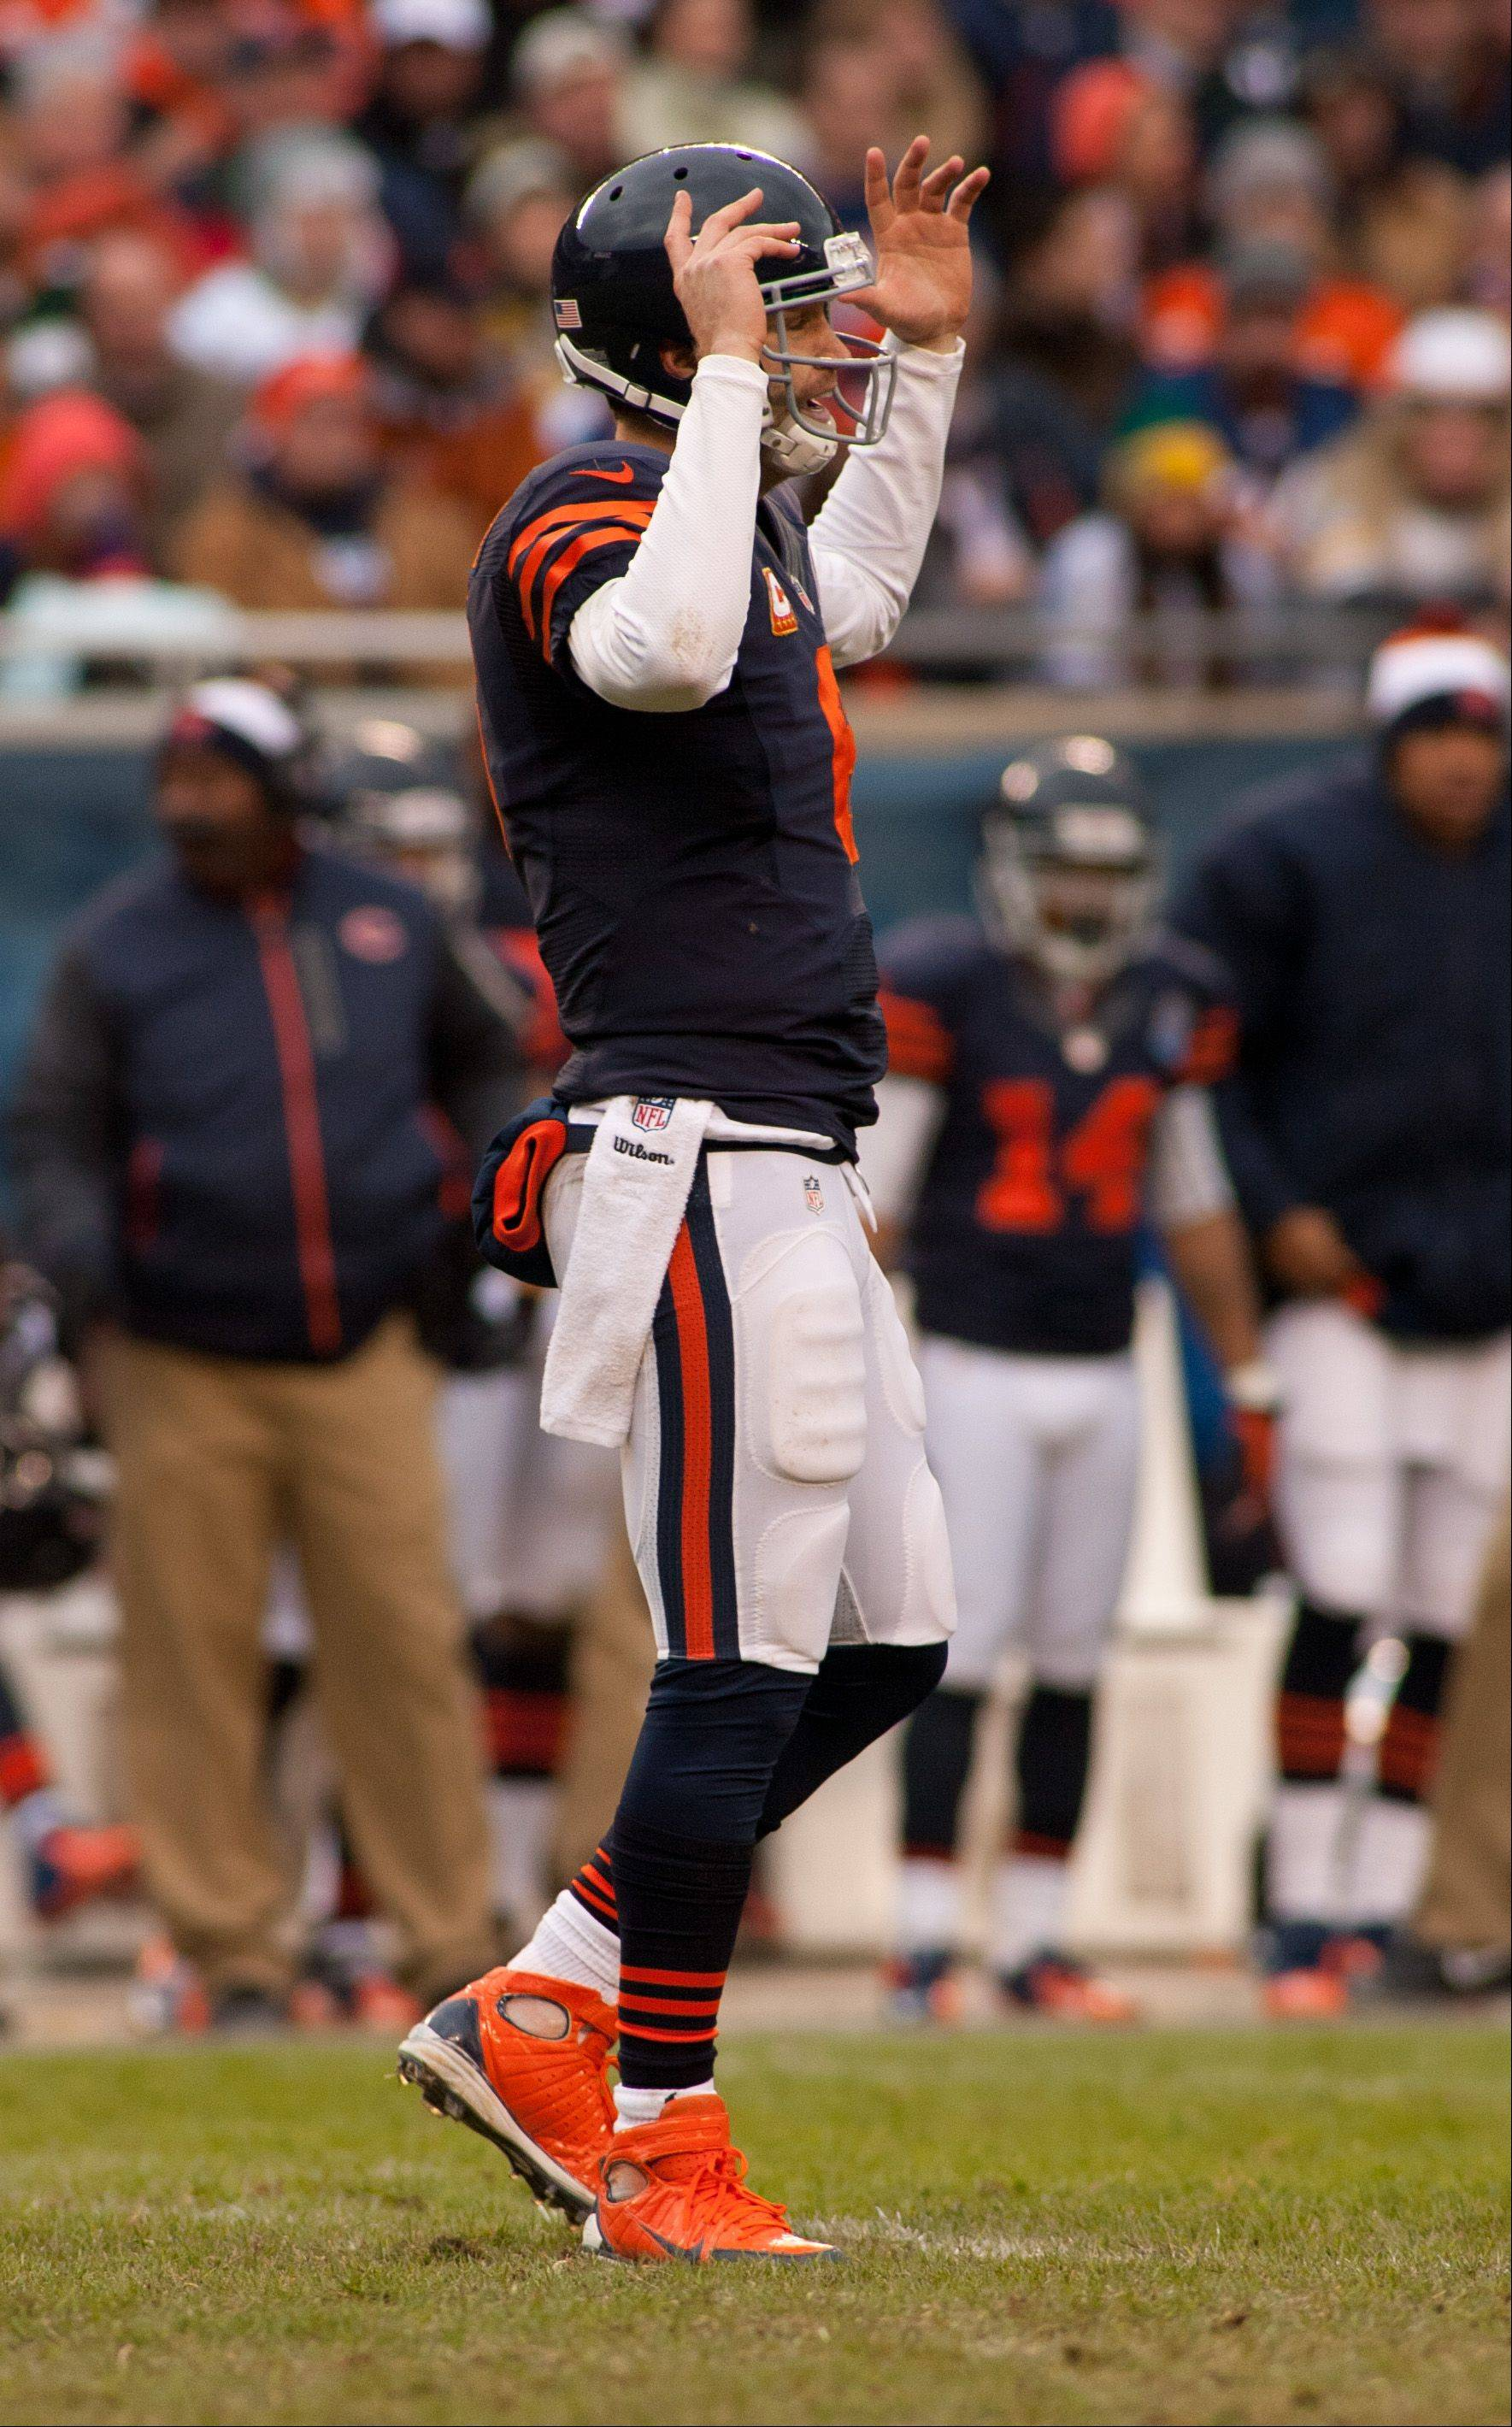 The Bears' Jay Cutler shows second half frustration after his down field pass, during Sunday's game at Soldier Field in Chicago.